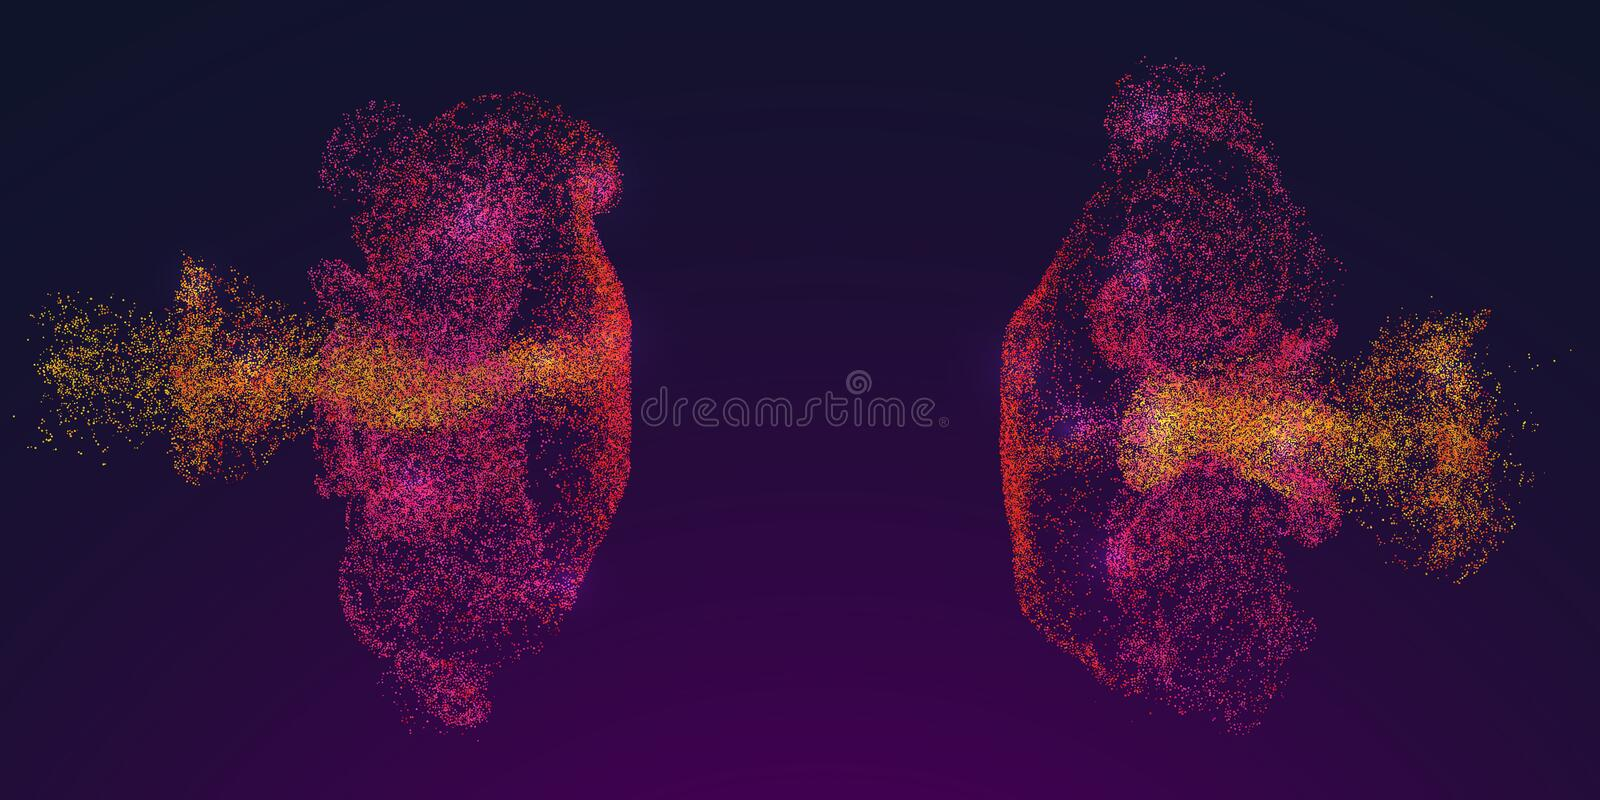 Color Particles Fluid Flow Design vector illustration